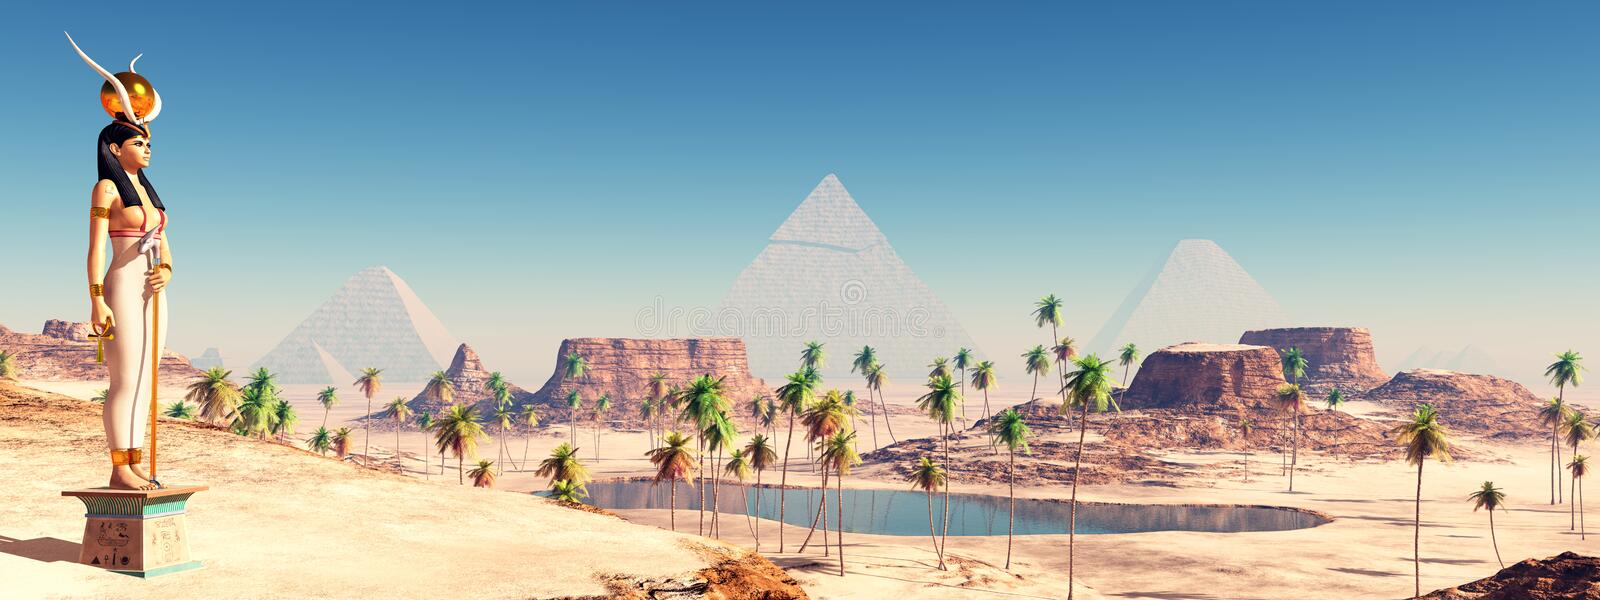 Goddess Hathor and the Pyramids of Giza. Computer generated 3D illustration with the Goddess Hathor and the Pyramids of Giza in Egypt royalty free illustration